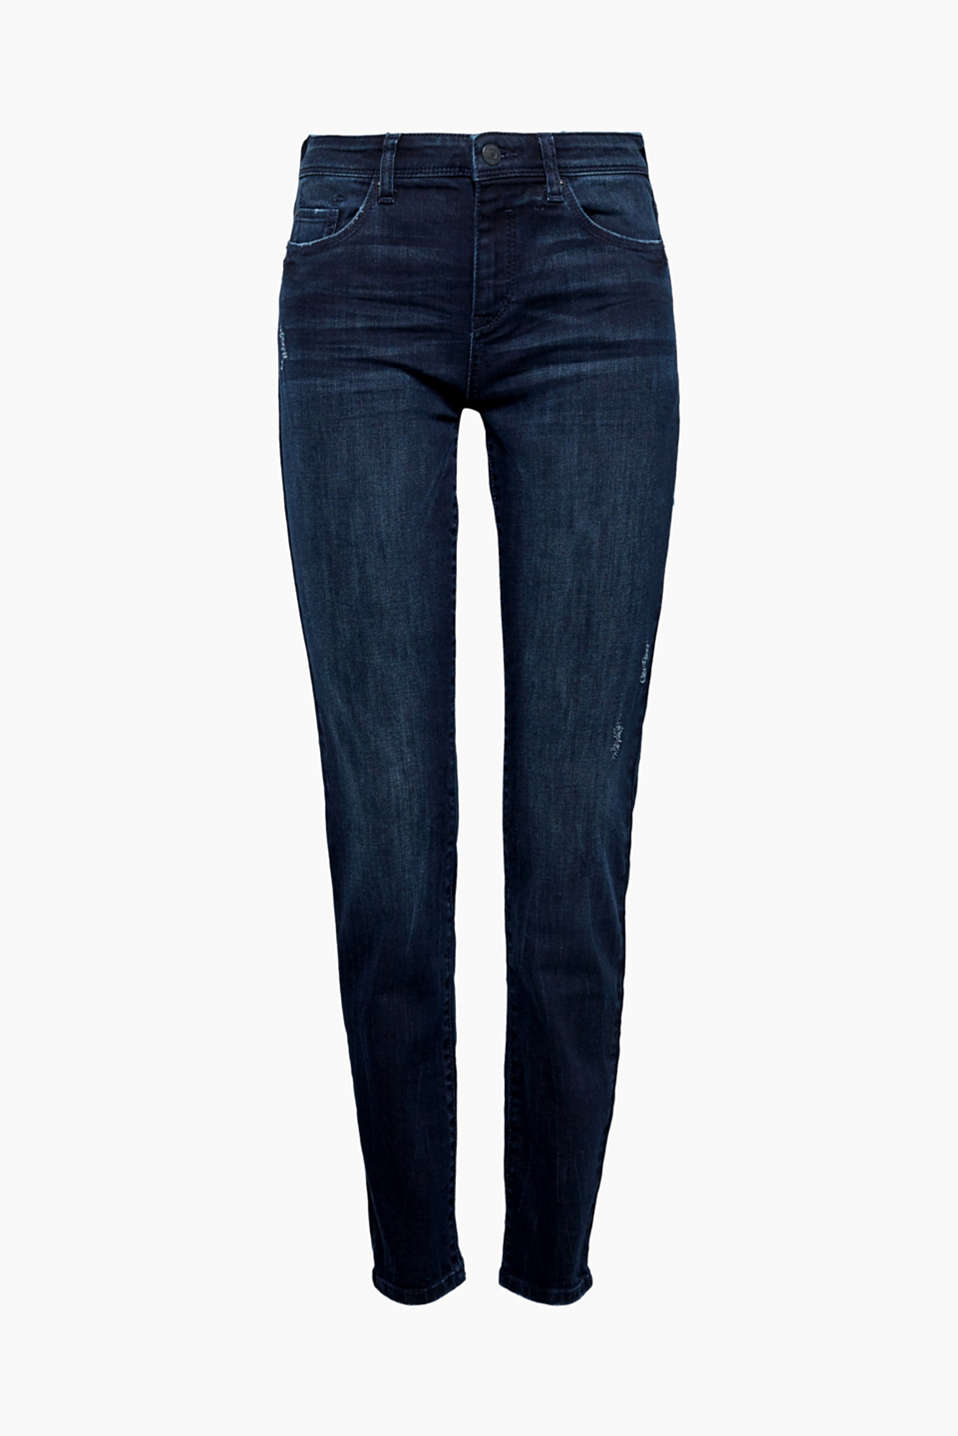 These dark denim jeans with stretch and casual vintage effects fit your figure perfectly and are also super comfy!